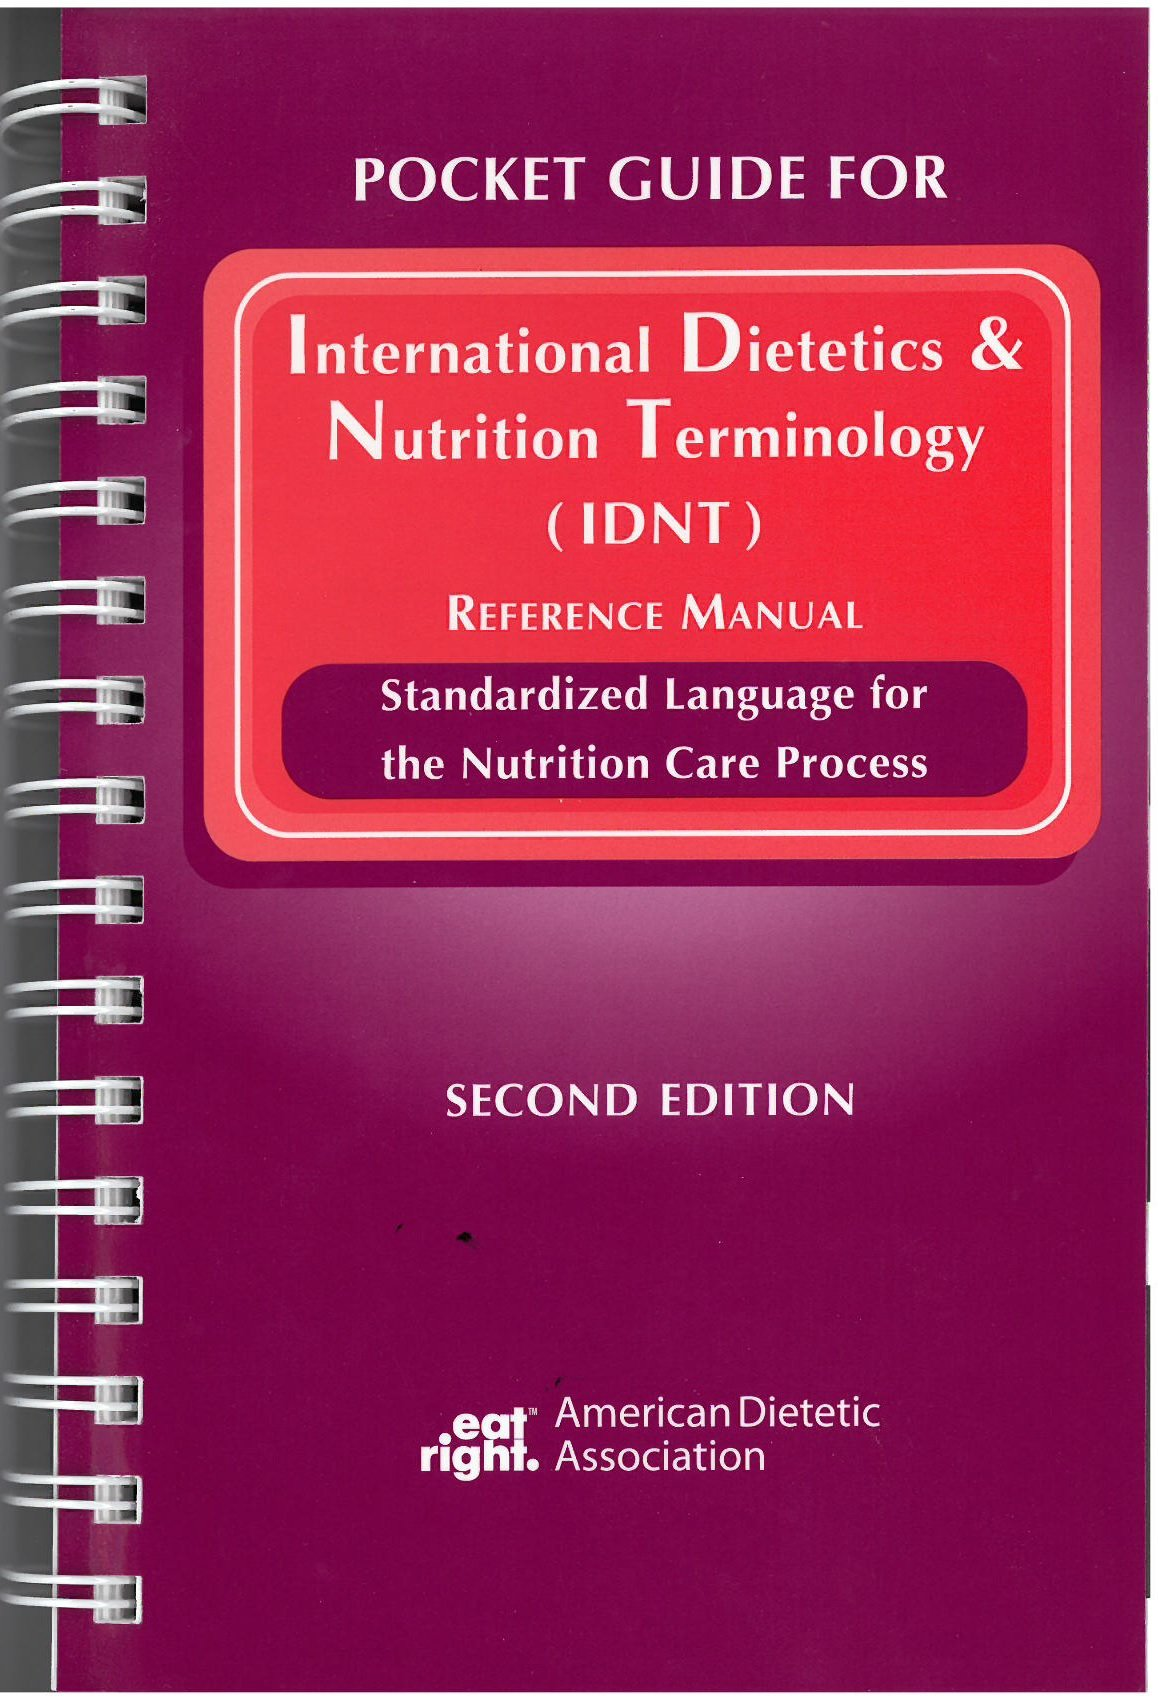 Pocket Guide for International Dietetics and Nutrition Terminology (Idnt) Reference  Manual: Amazon.co.uk: Ada: 9780880914277: Books